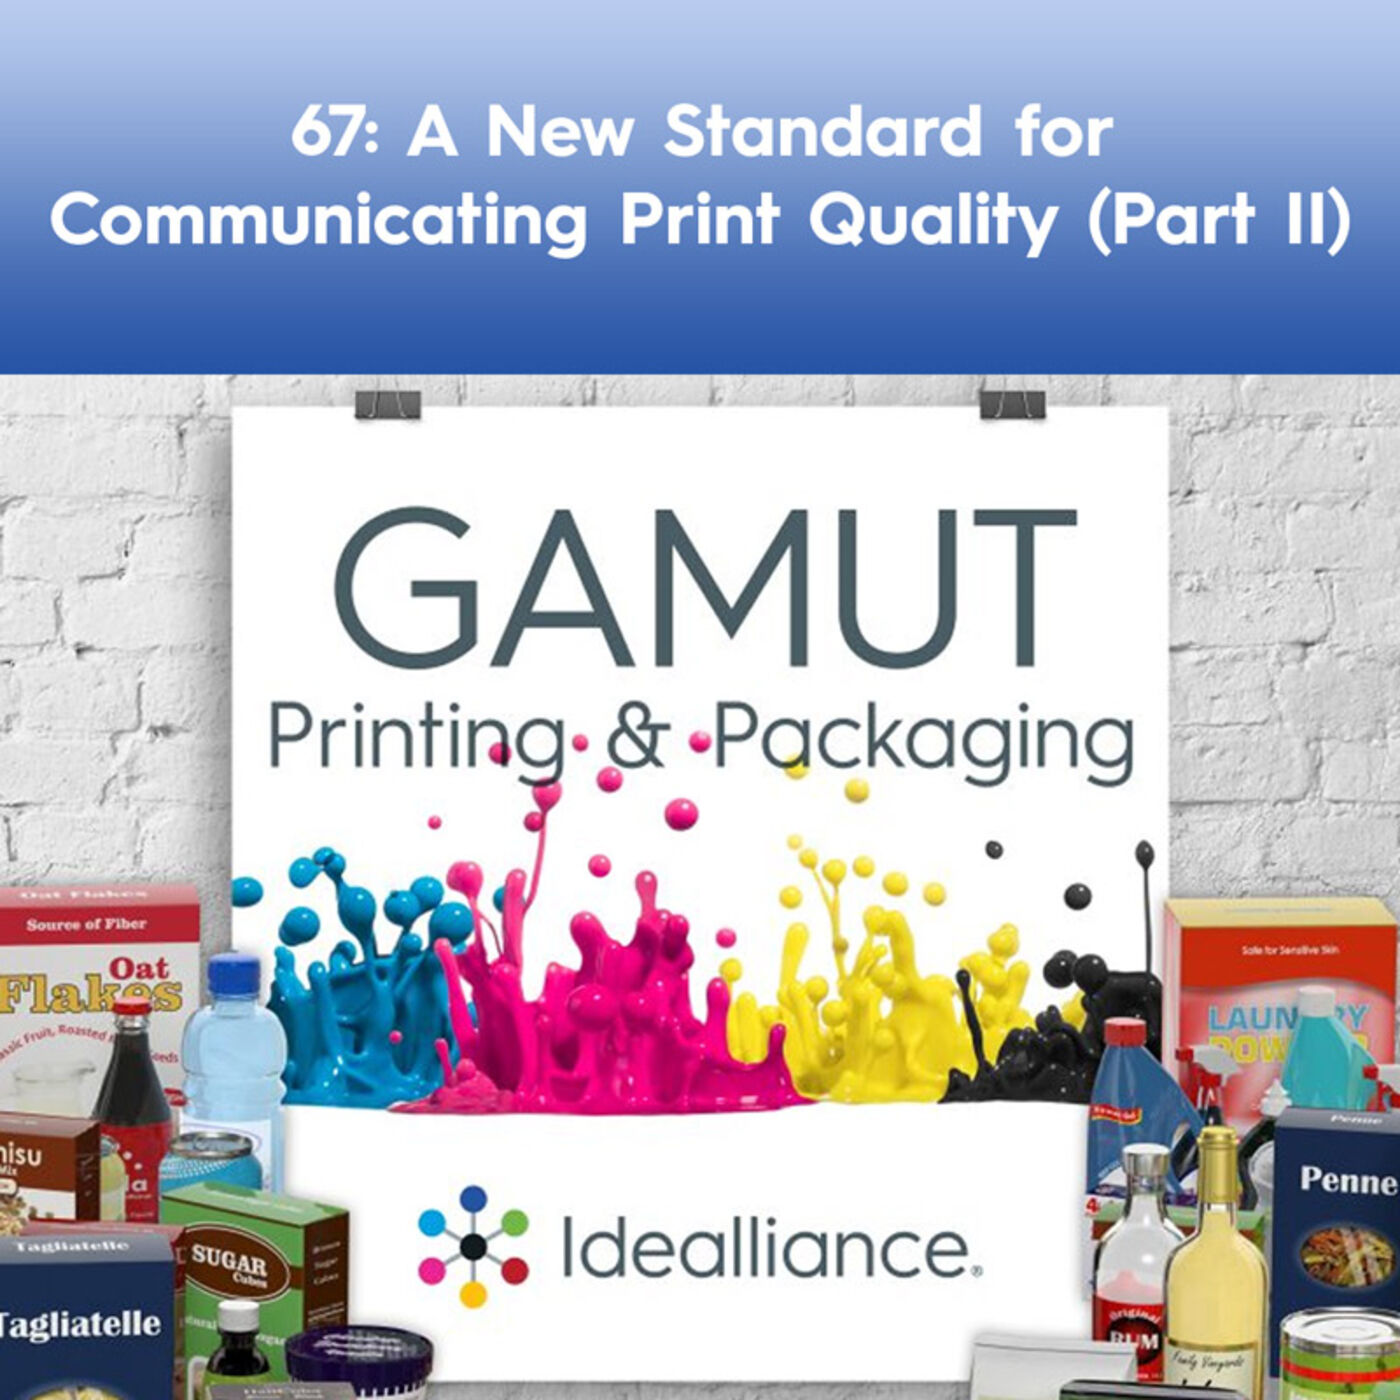 67: A New Standard for Communicating Print Quality (Part II)